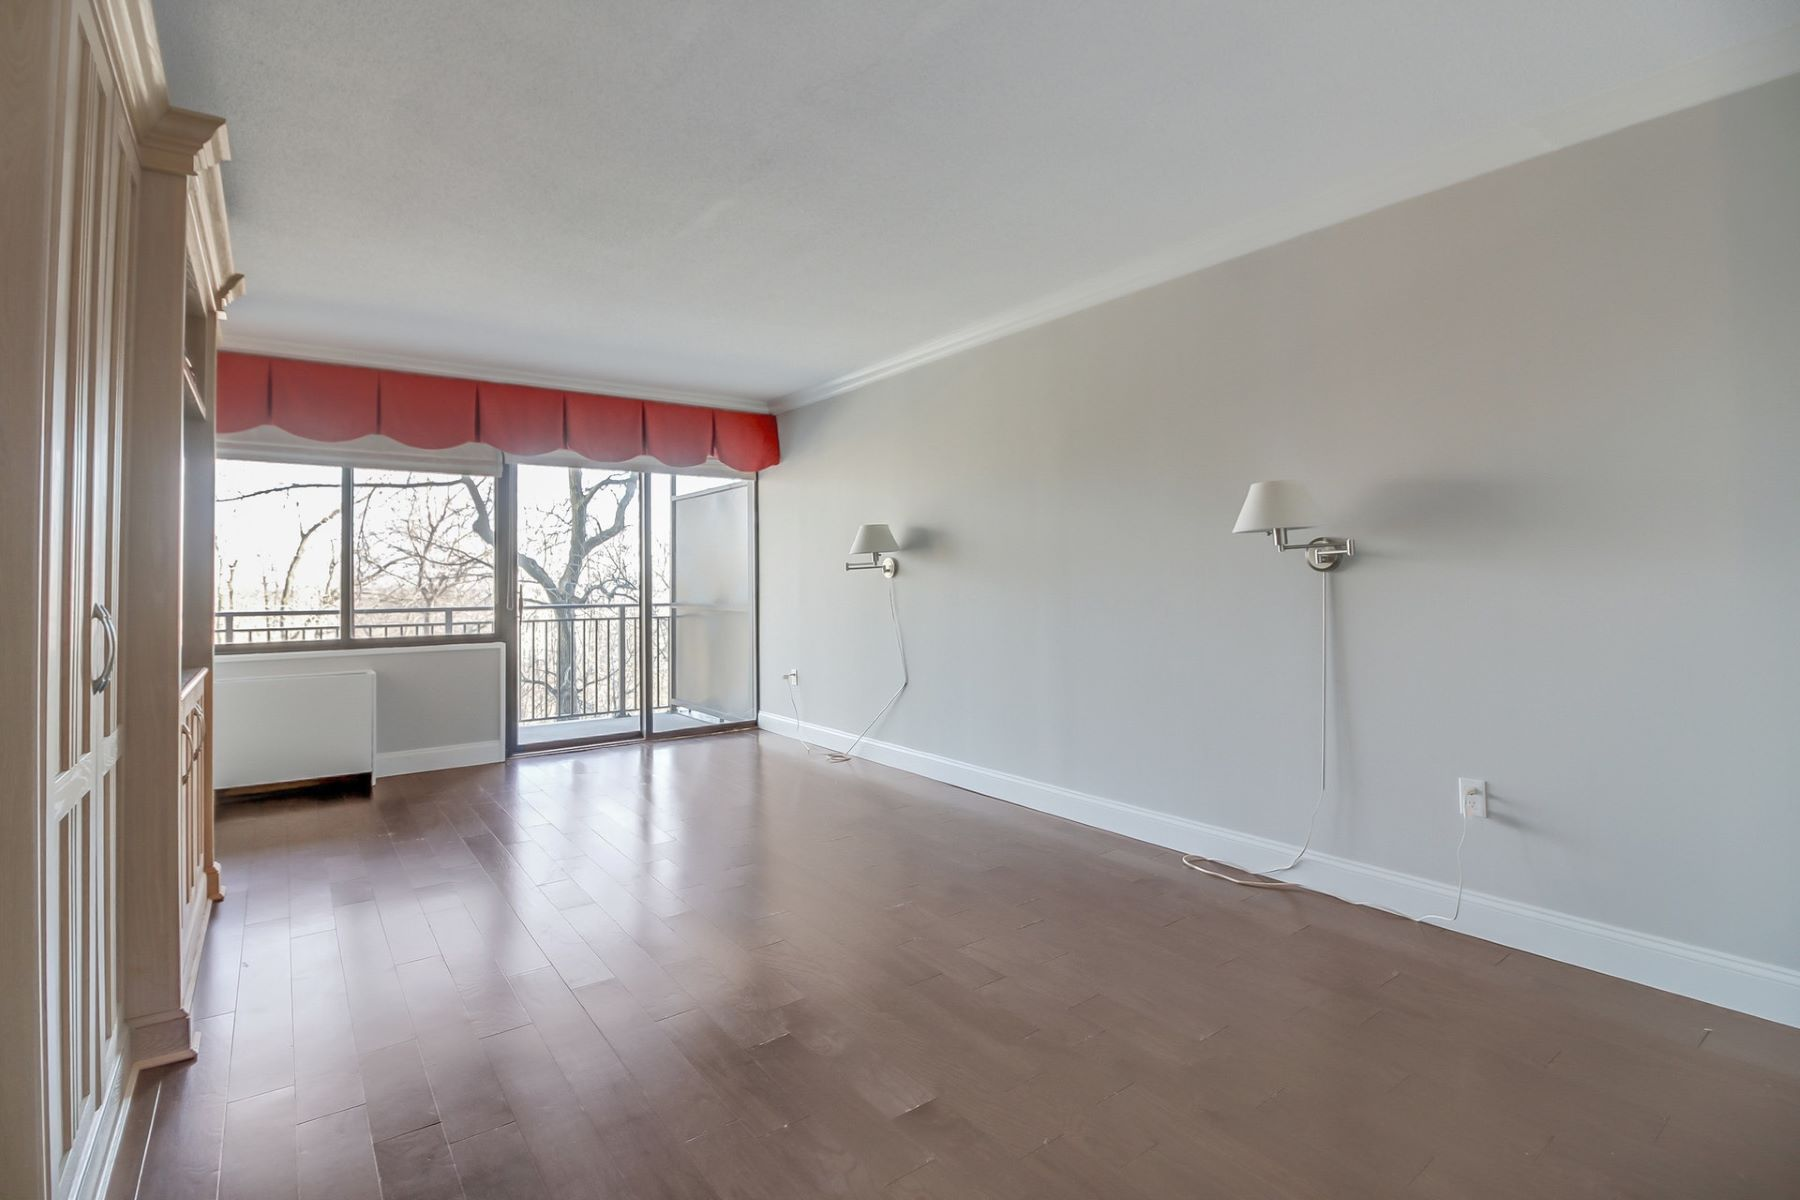 Additional photo for property listing at  Fort Lee, New Jersey 07024 United States